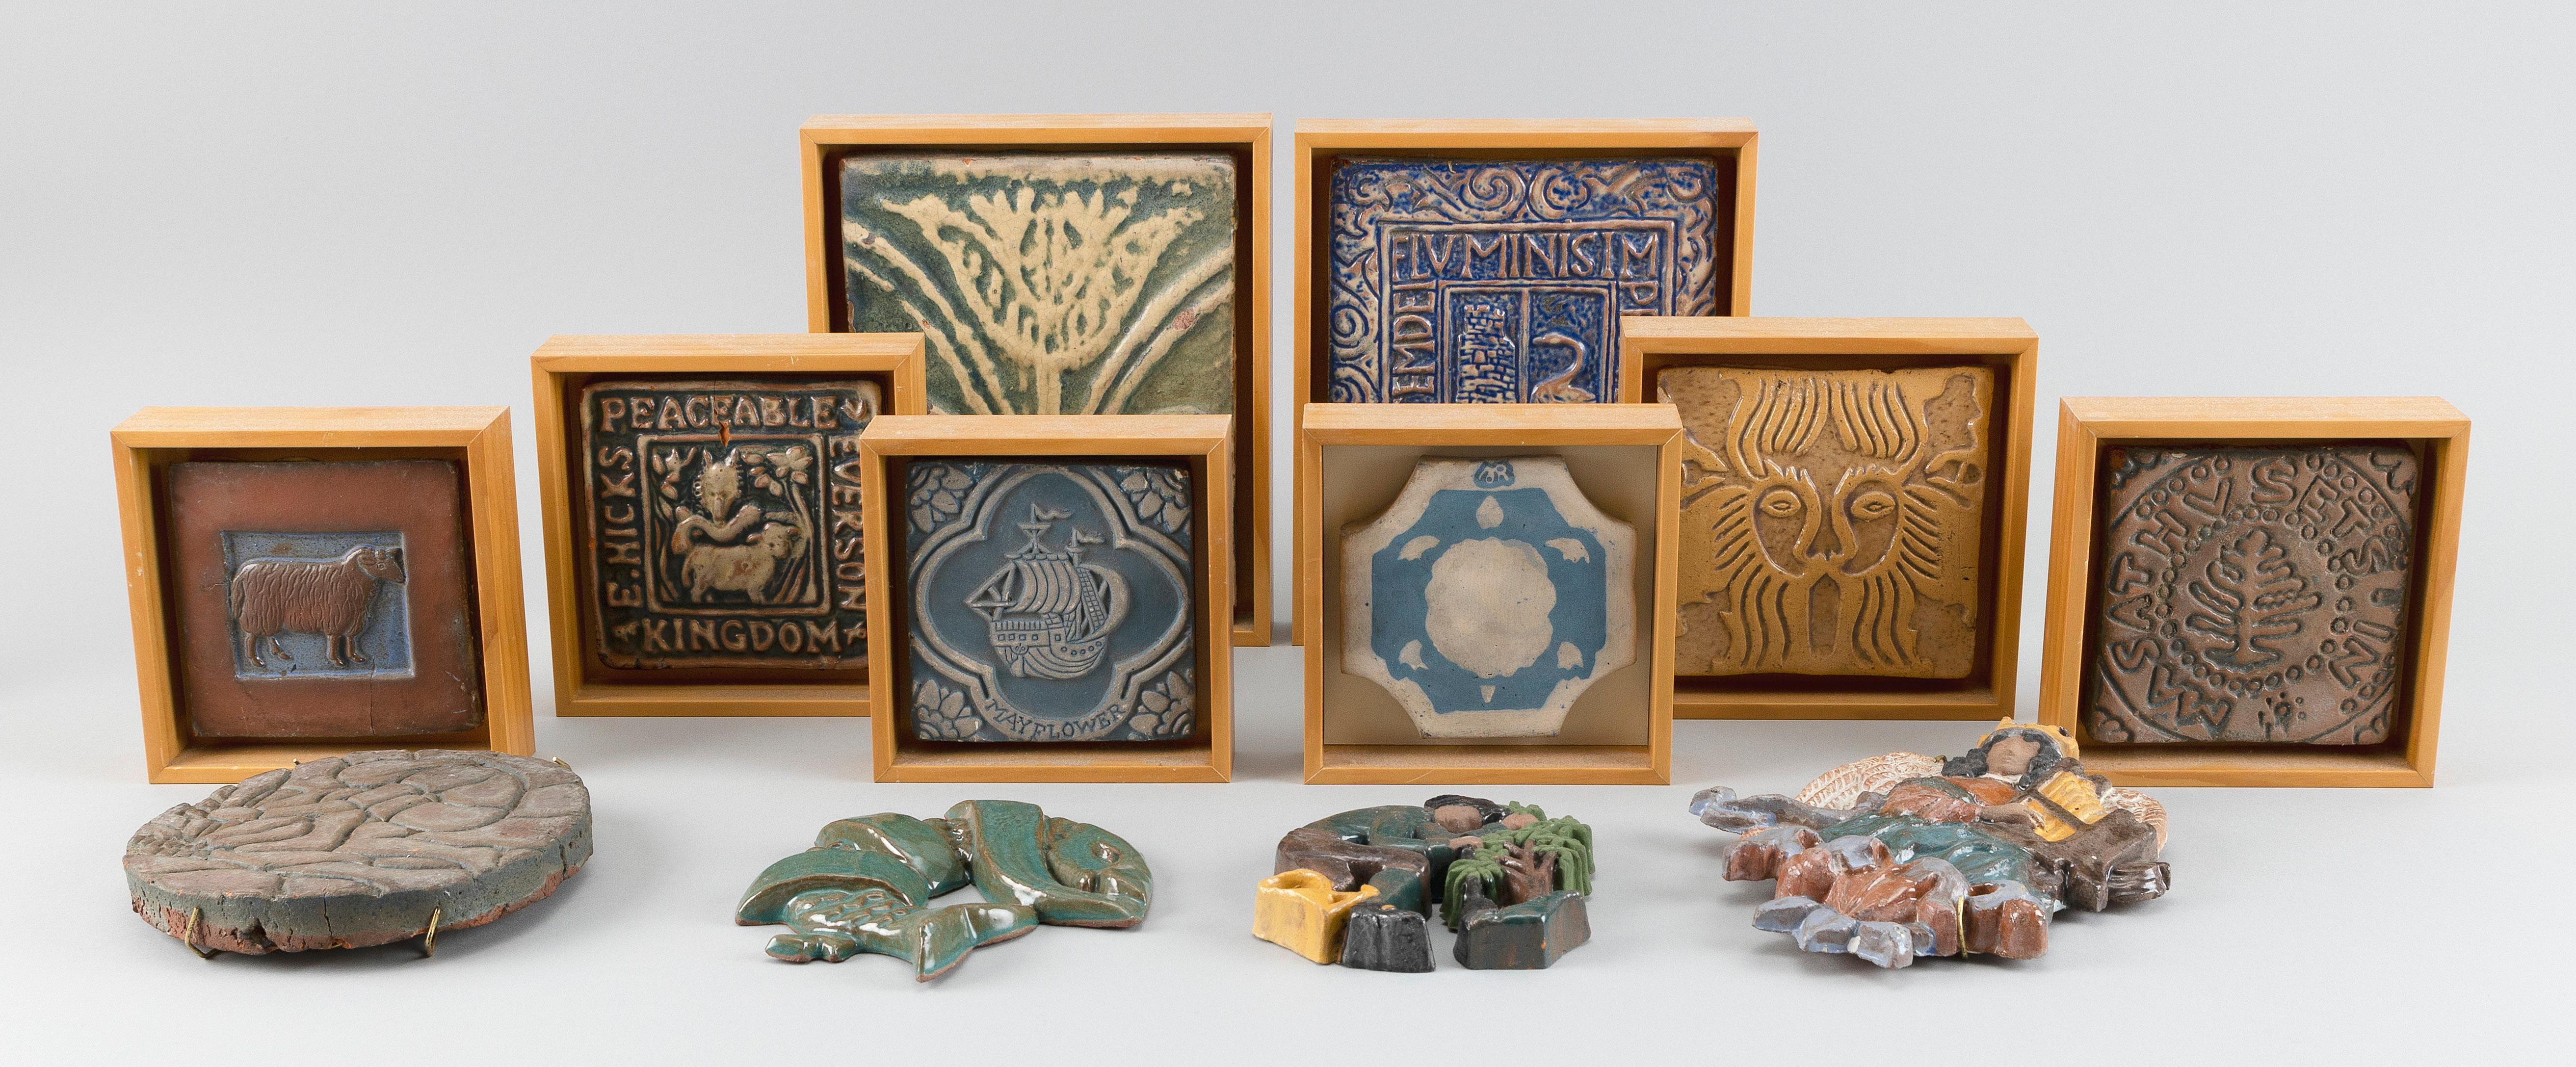 """TWELVE MORAVIAN POTTERY & TILE WORKS CERAMIC TILES Doylestown, Pennsylvania, 20th Century, Subjects include animals, Massachusetts Oak and the Mayflower . Eight in matching birch frames. Largest 8"""" x 7""""., Provenance:"""